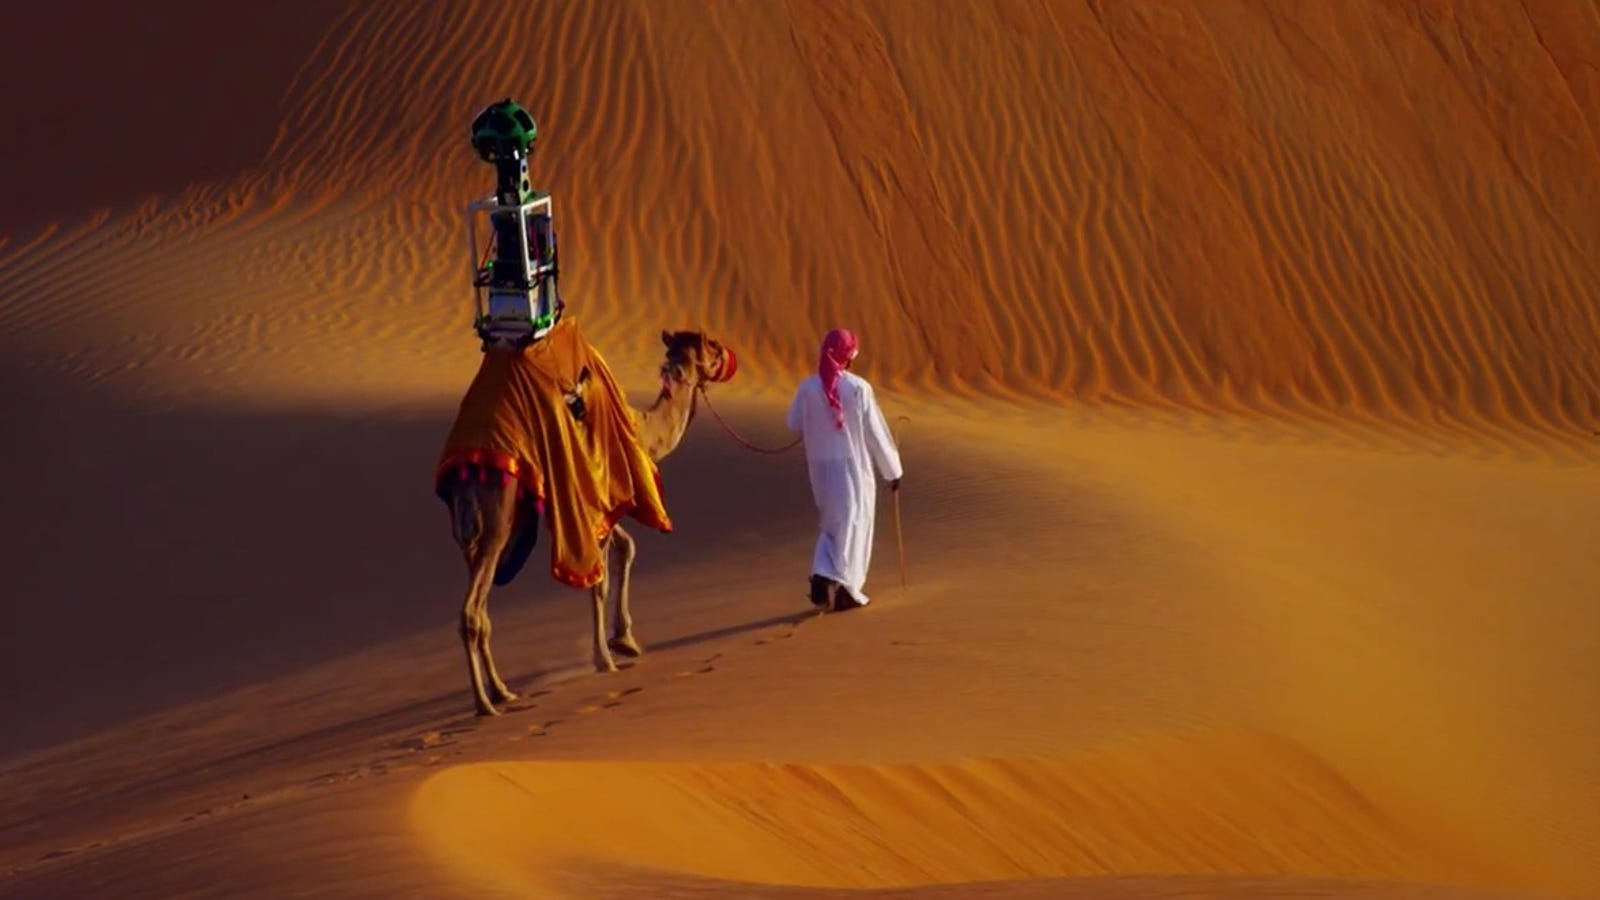 Google Strapped a Camera To a Camel To Put The Desert on